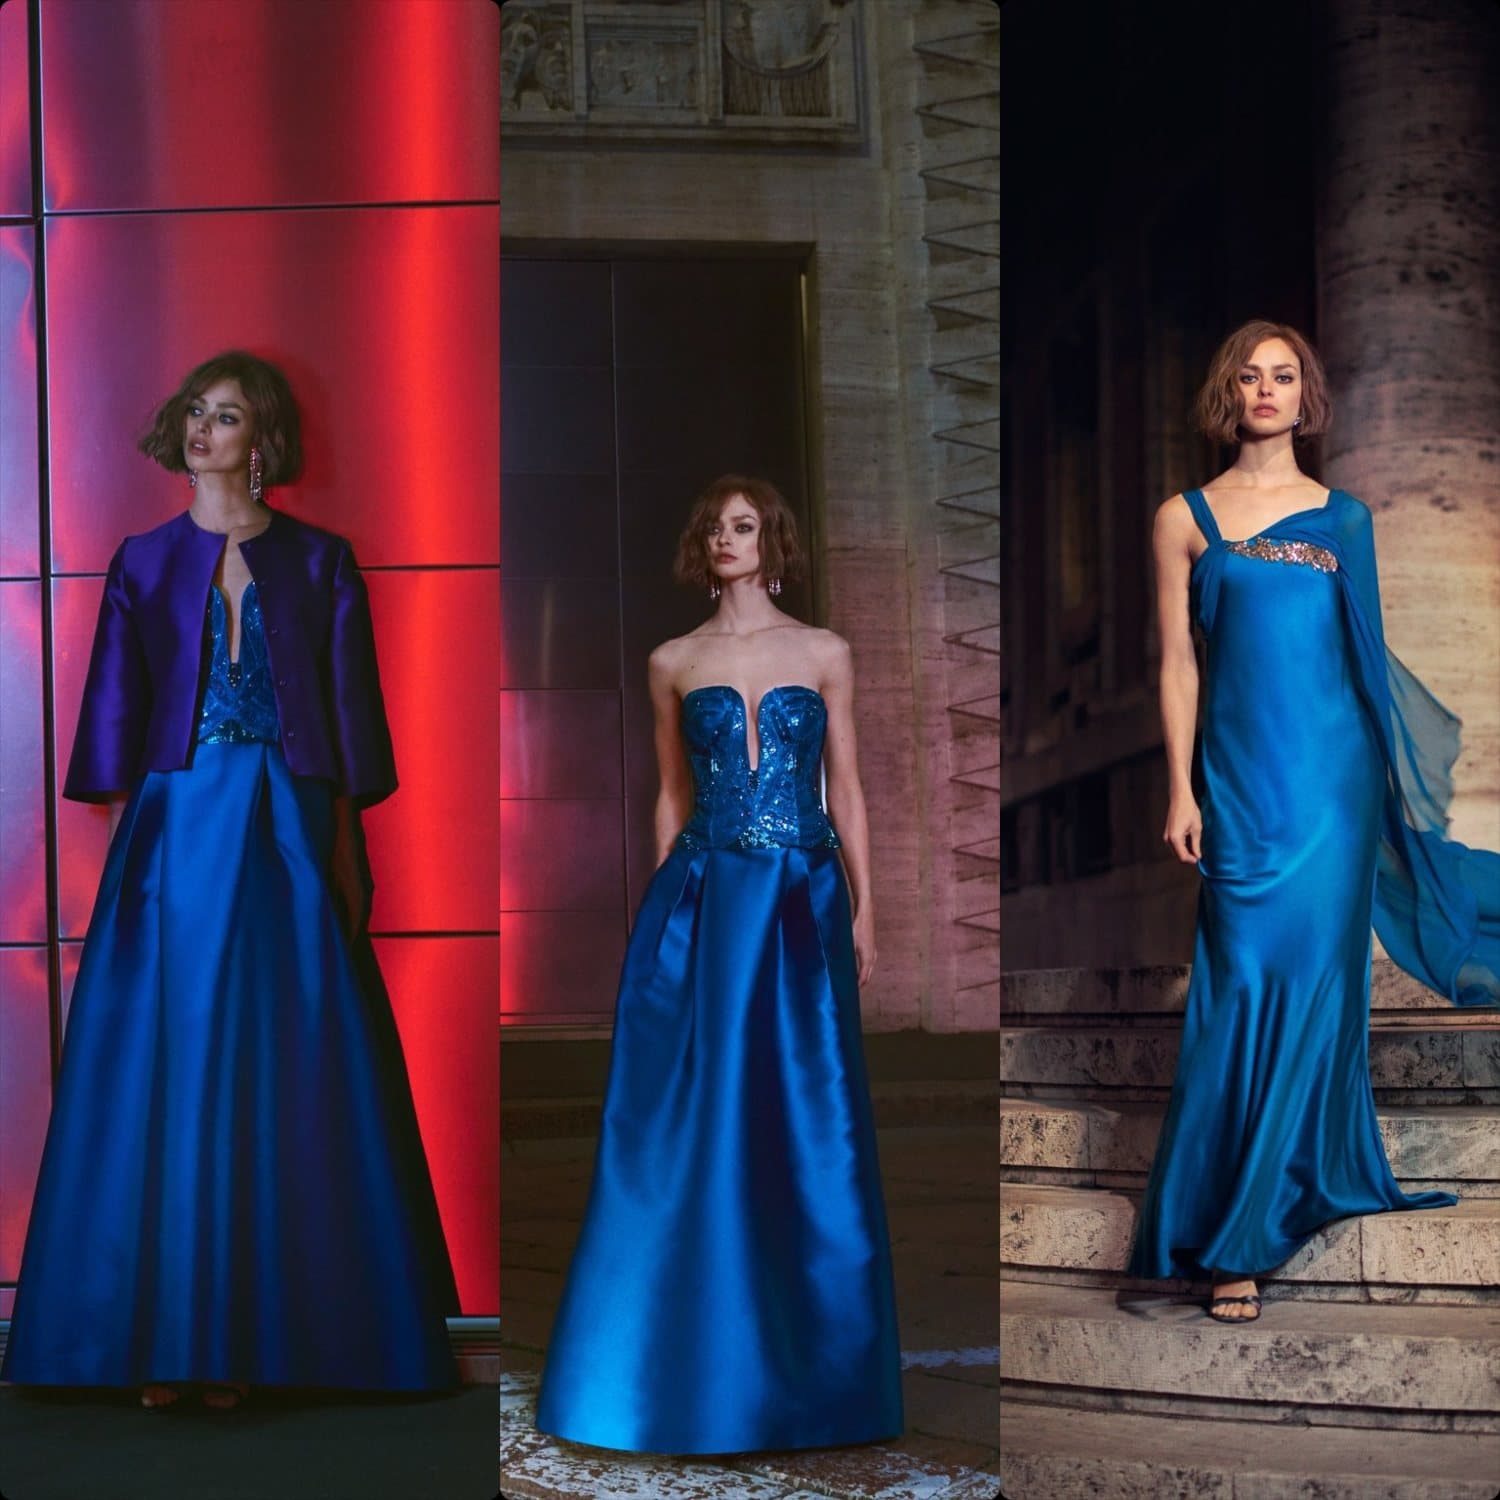 Alberta Ferretti Limited Edition Haute Couture Spring Summer 2020 Paris Fashion Week. RUNWAY MAGAZINE ® Collections. RUNWAY NOW / RUNWAY NEW